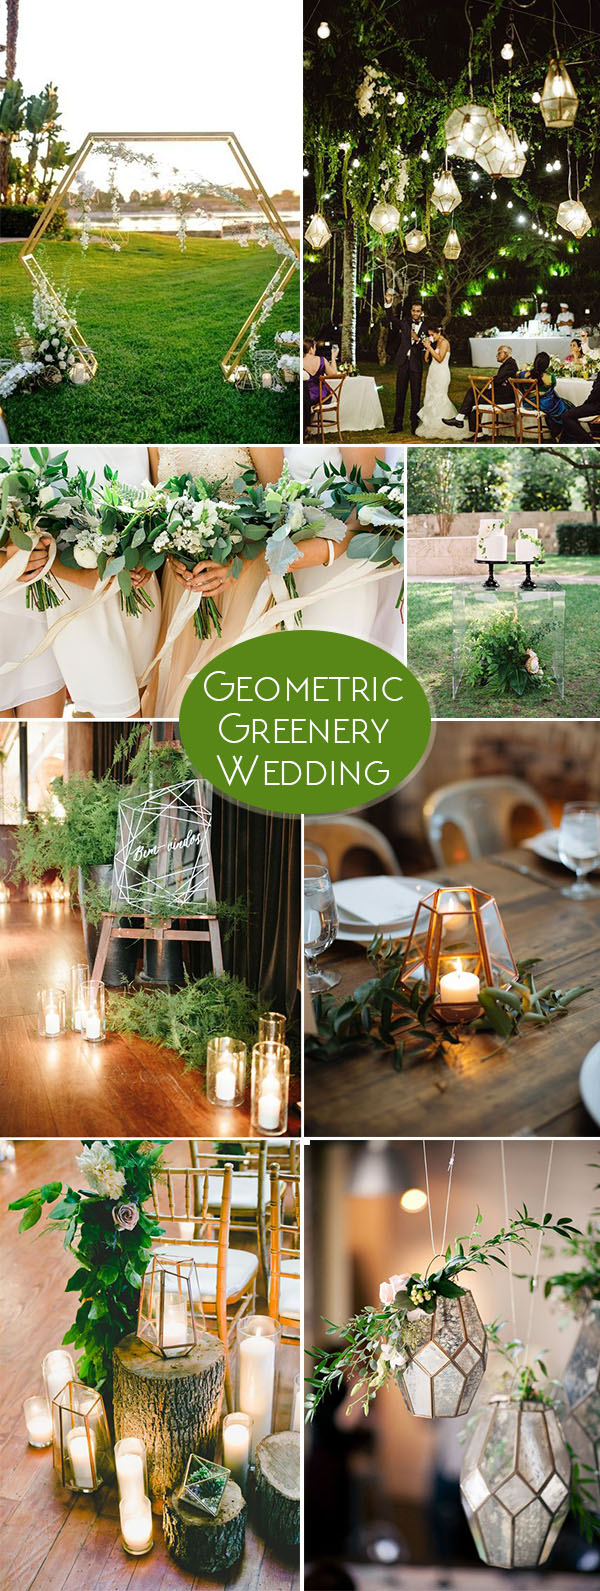 Geometric Greenery Wedding Party Ideas